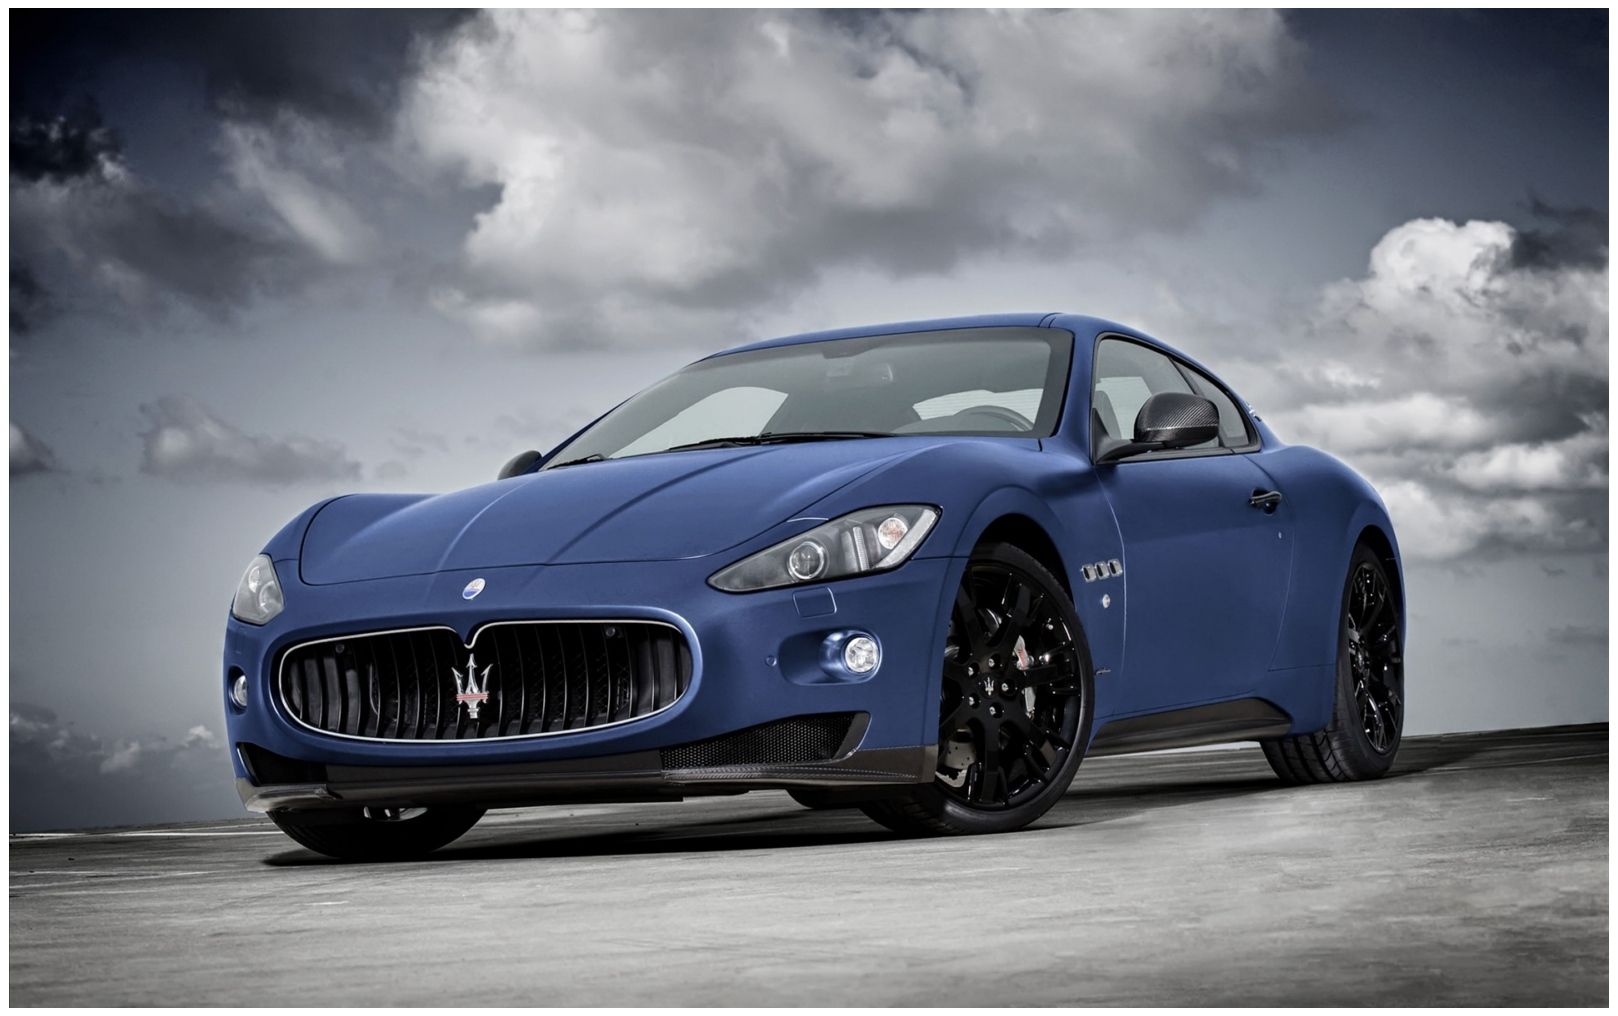 maserati granturismo car hd wallpapers view wallpapers. Black Bedroom Furniture Sets. Home Design Ideas